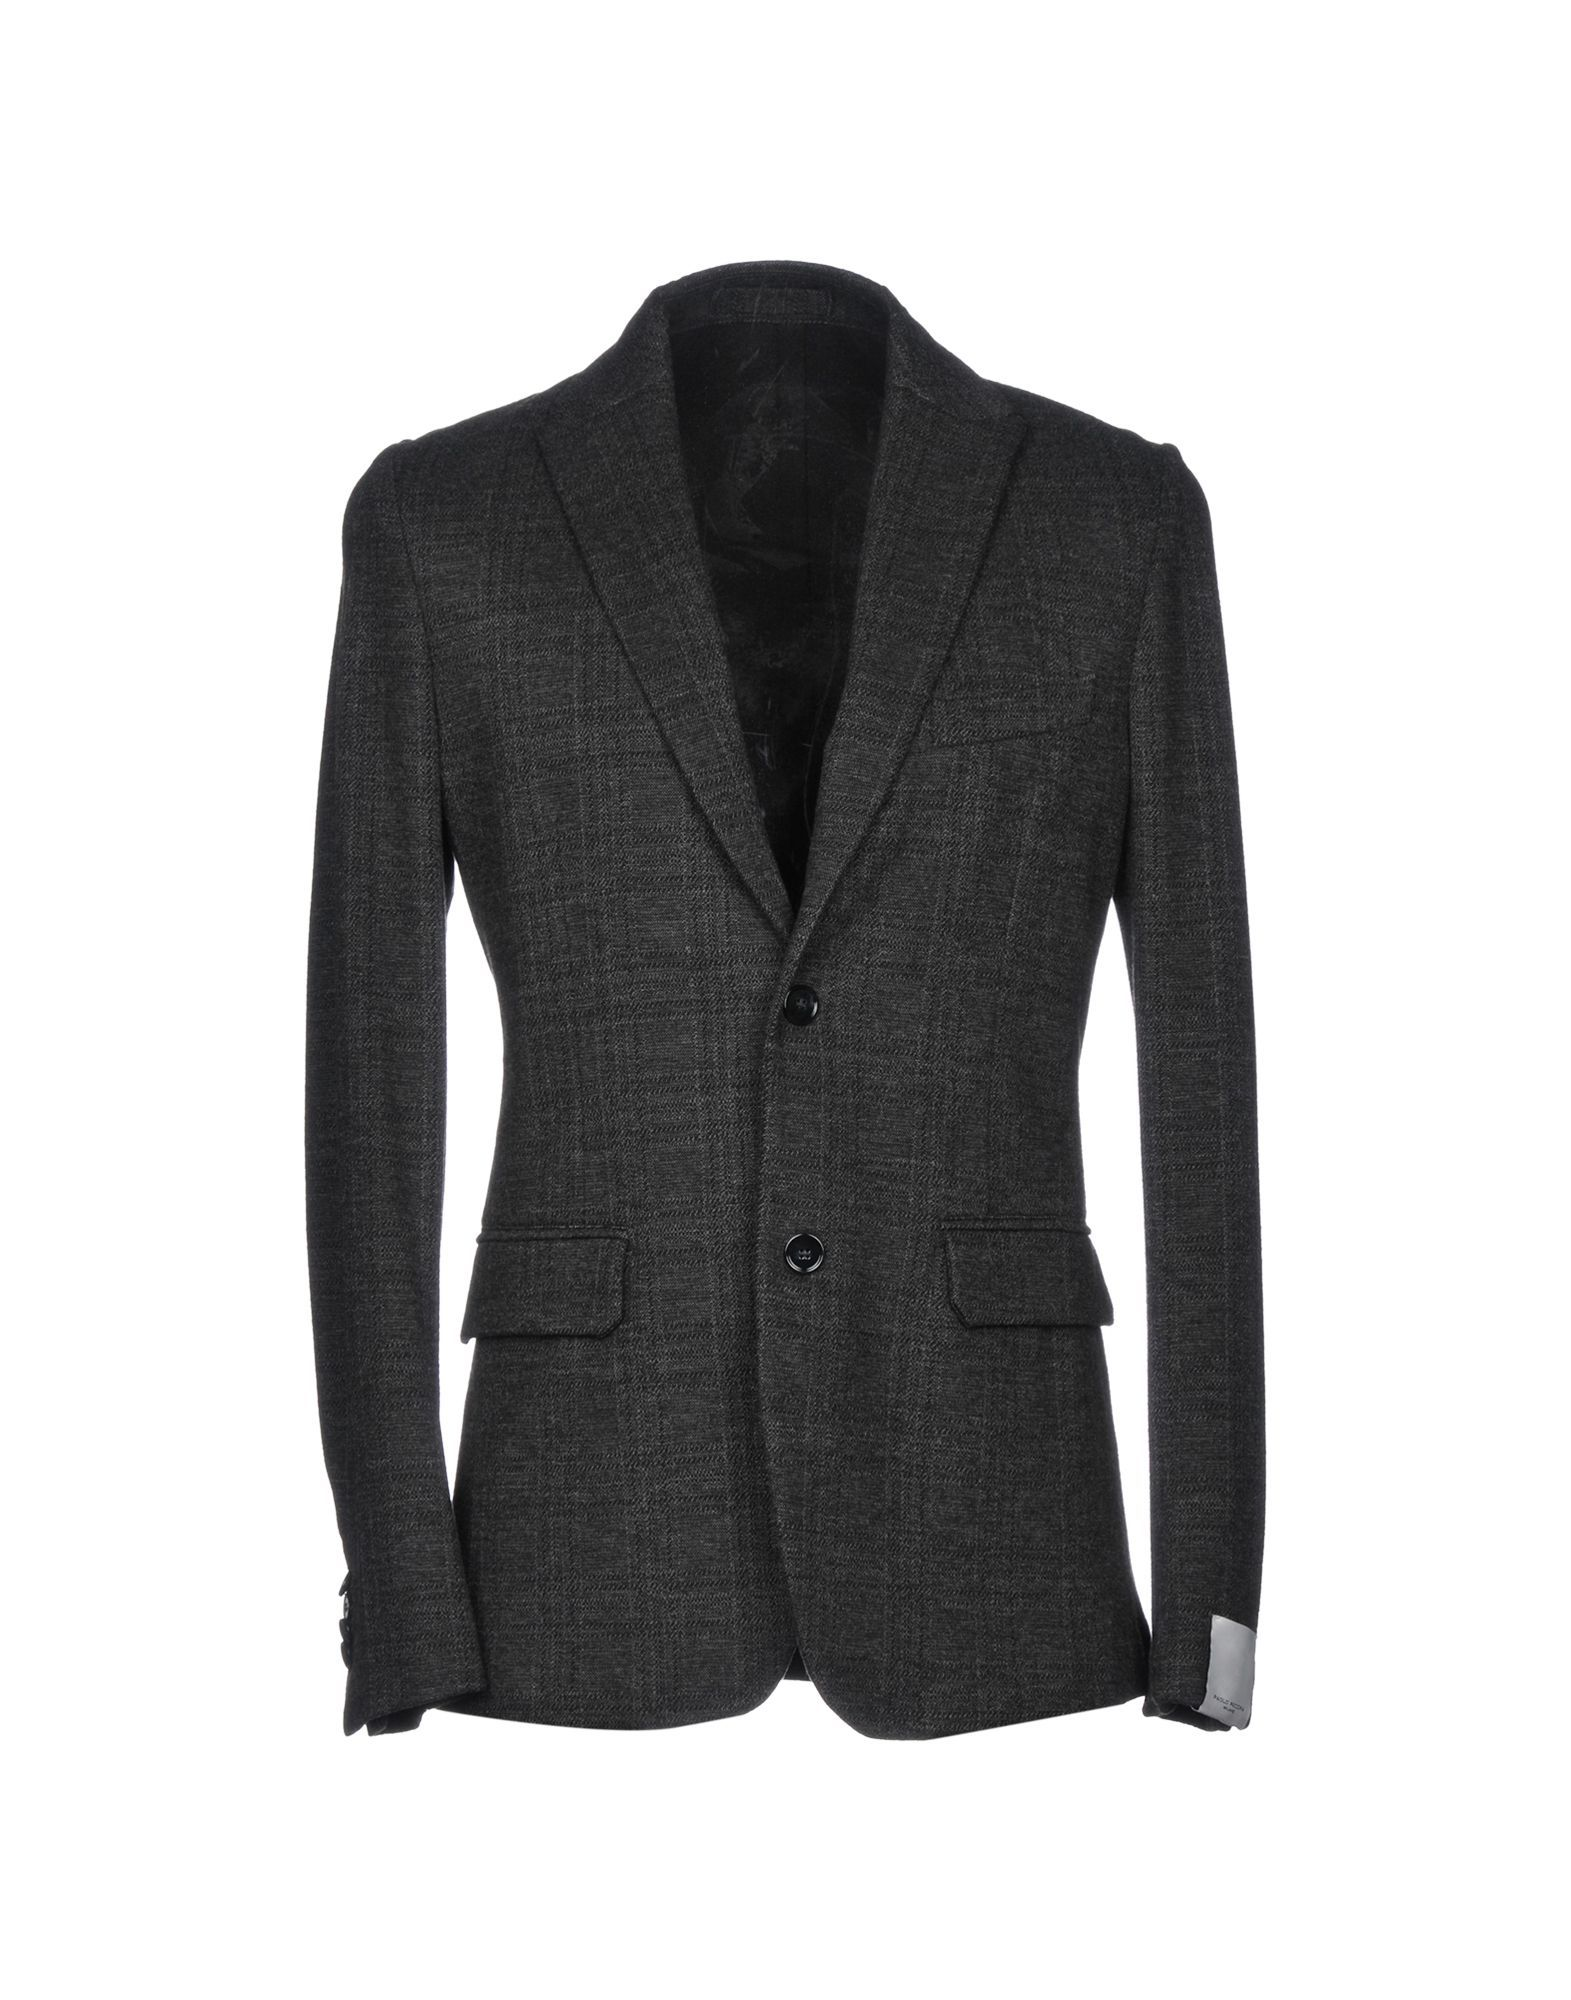 SUITS AND JACKETS Paolo Pecora Lead Man Viscose